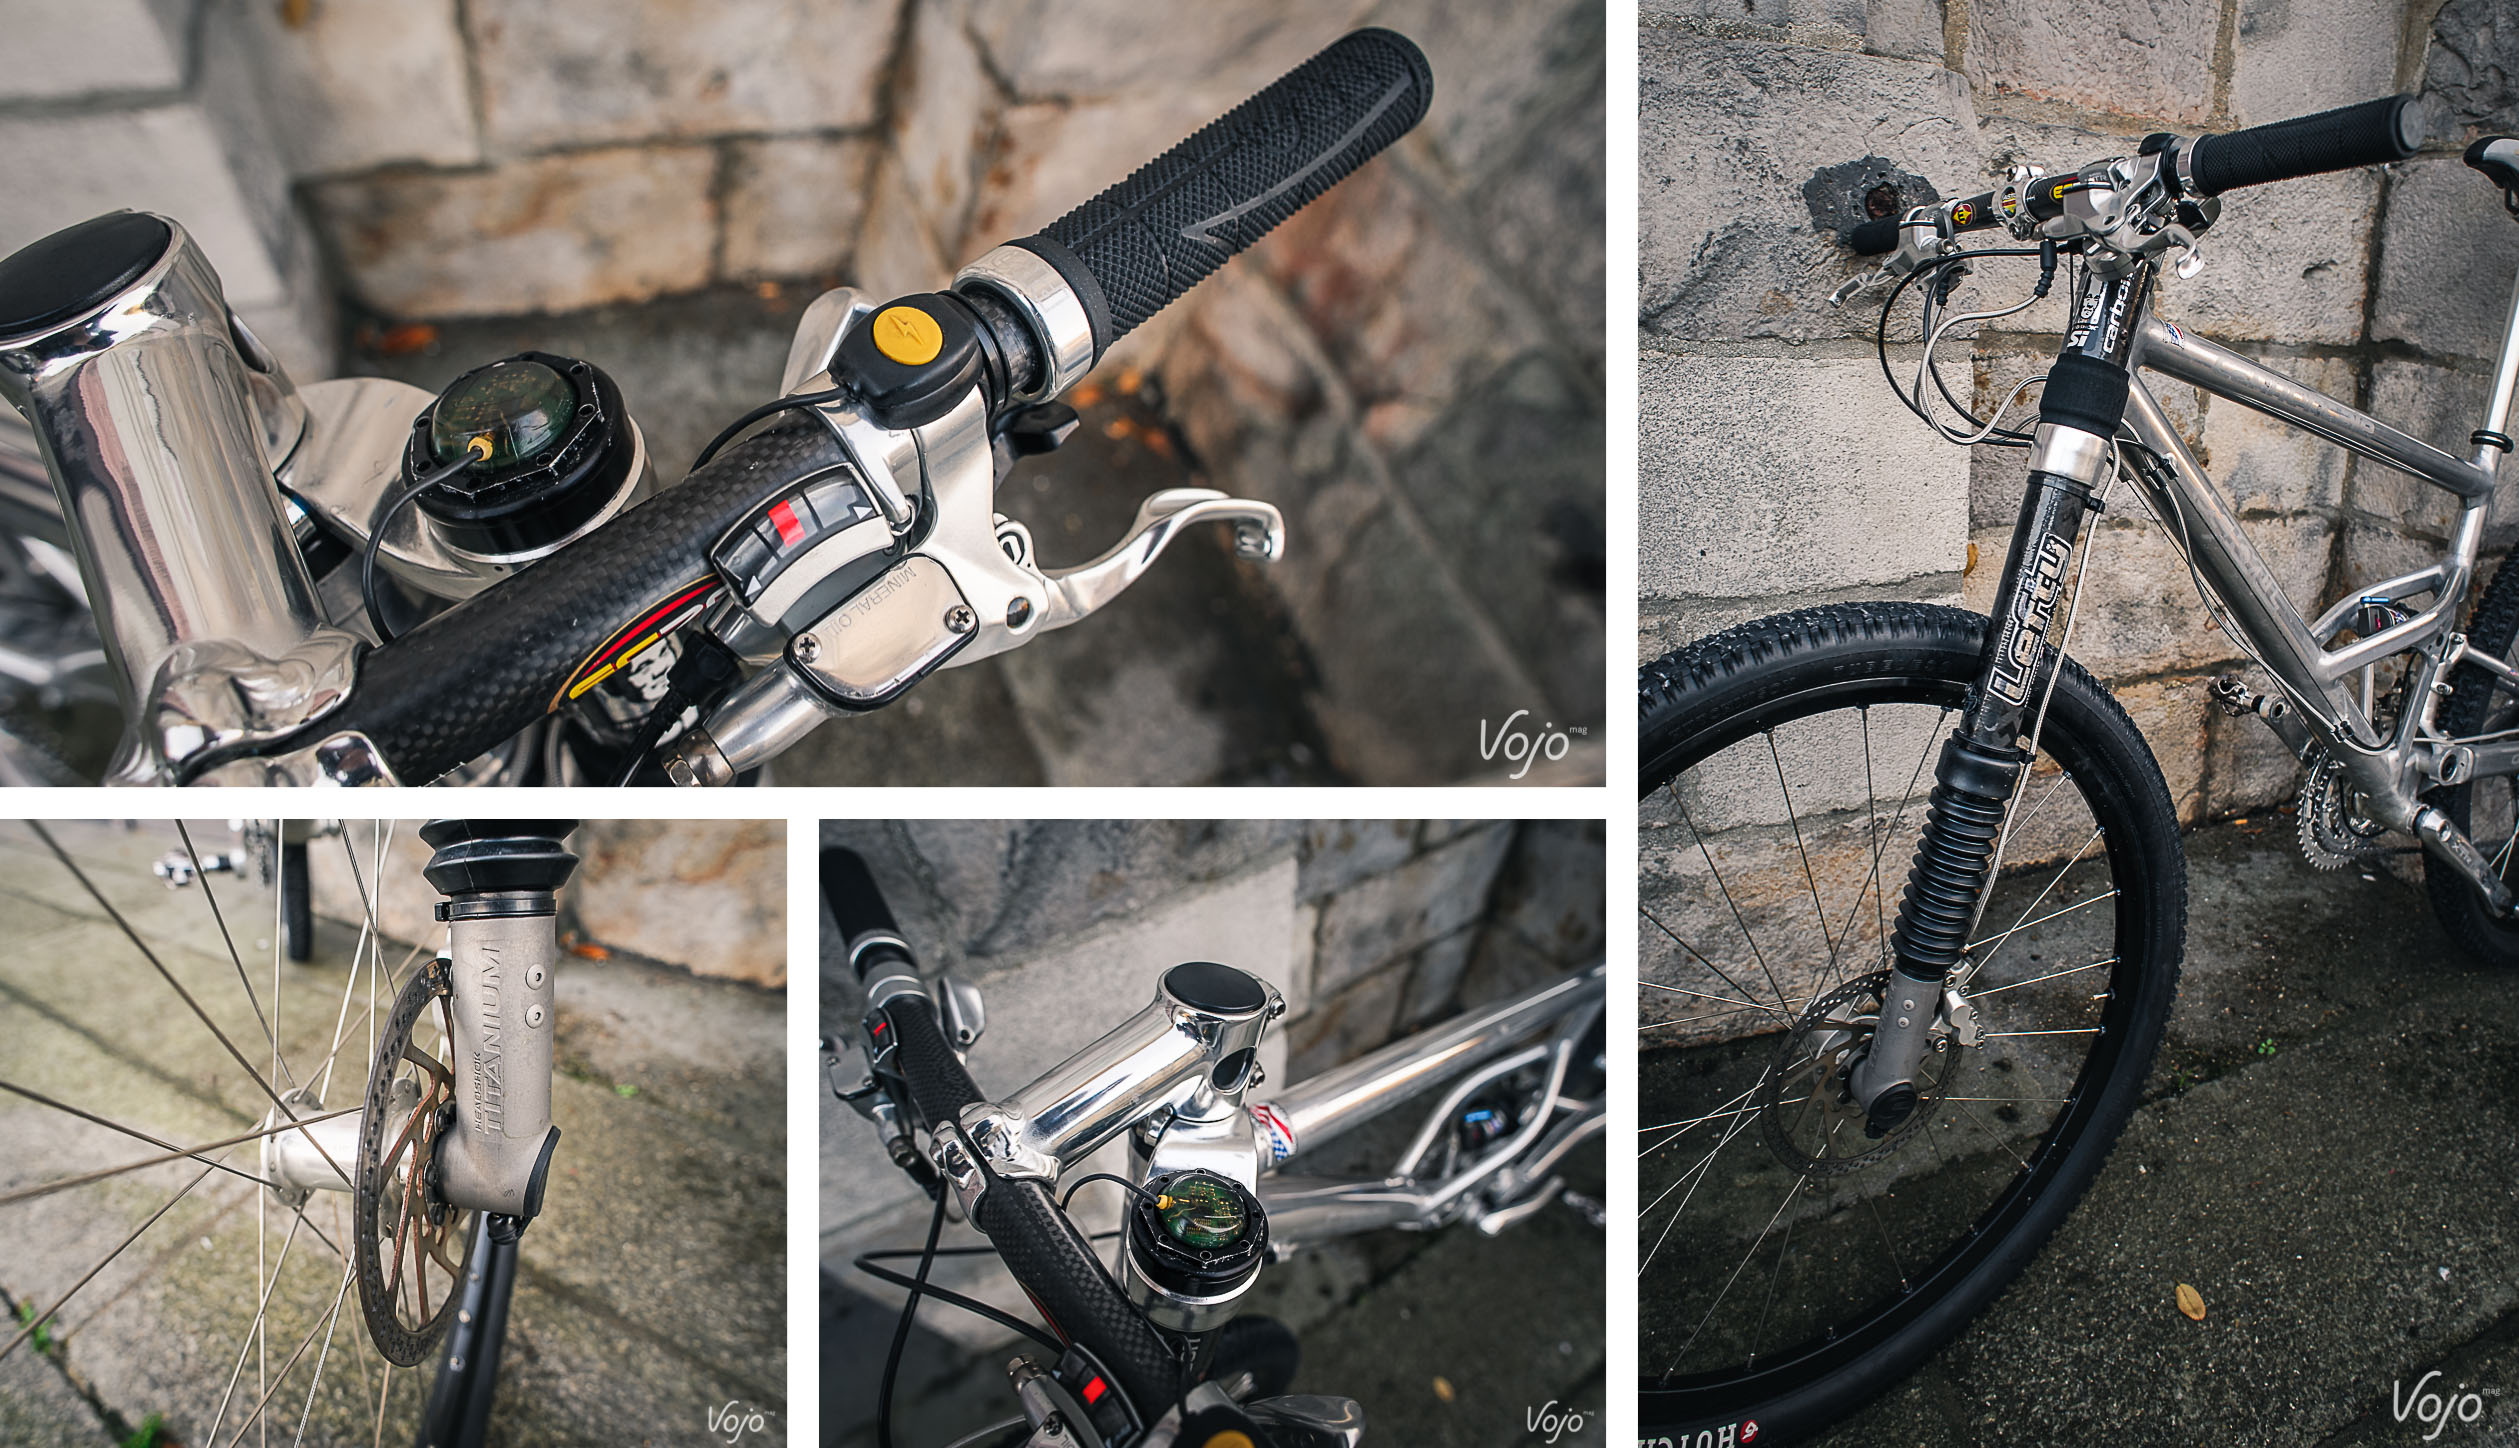 5-Cannondale_Jekyll_GoodBoy_Copyright_OBeart_VojoMag-1